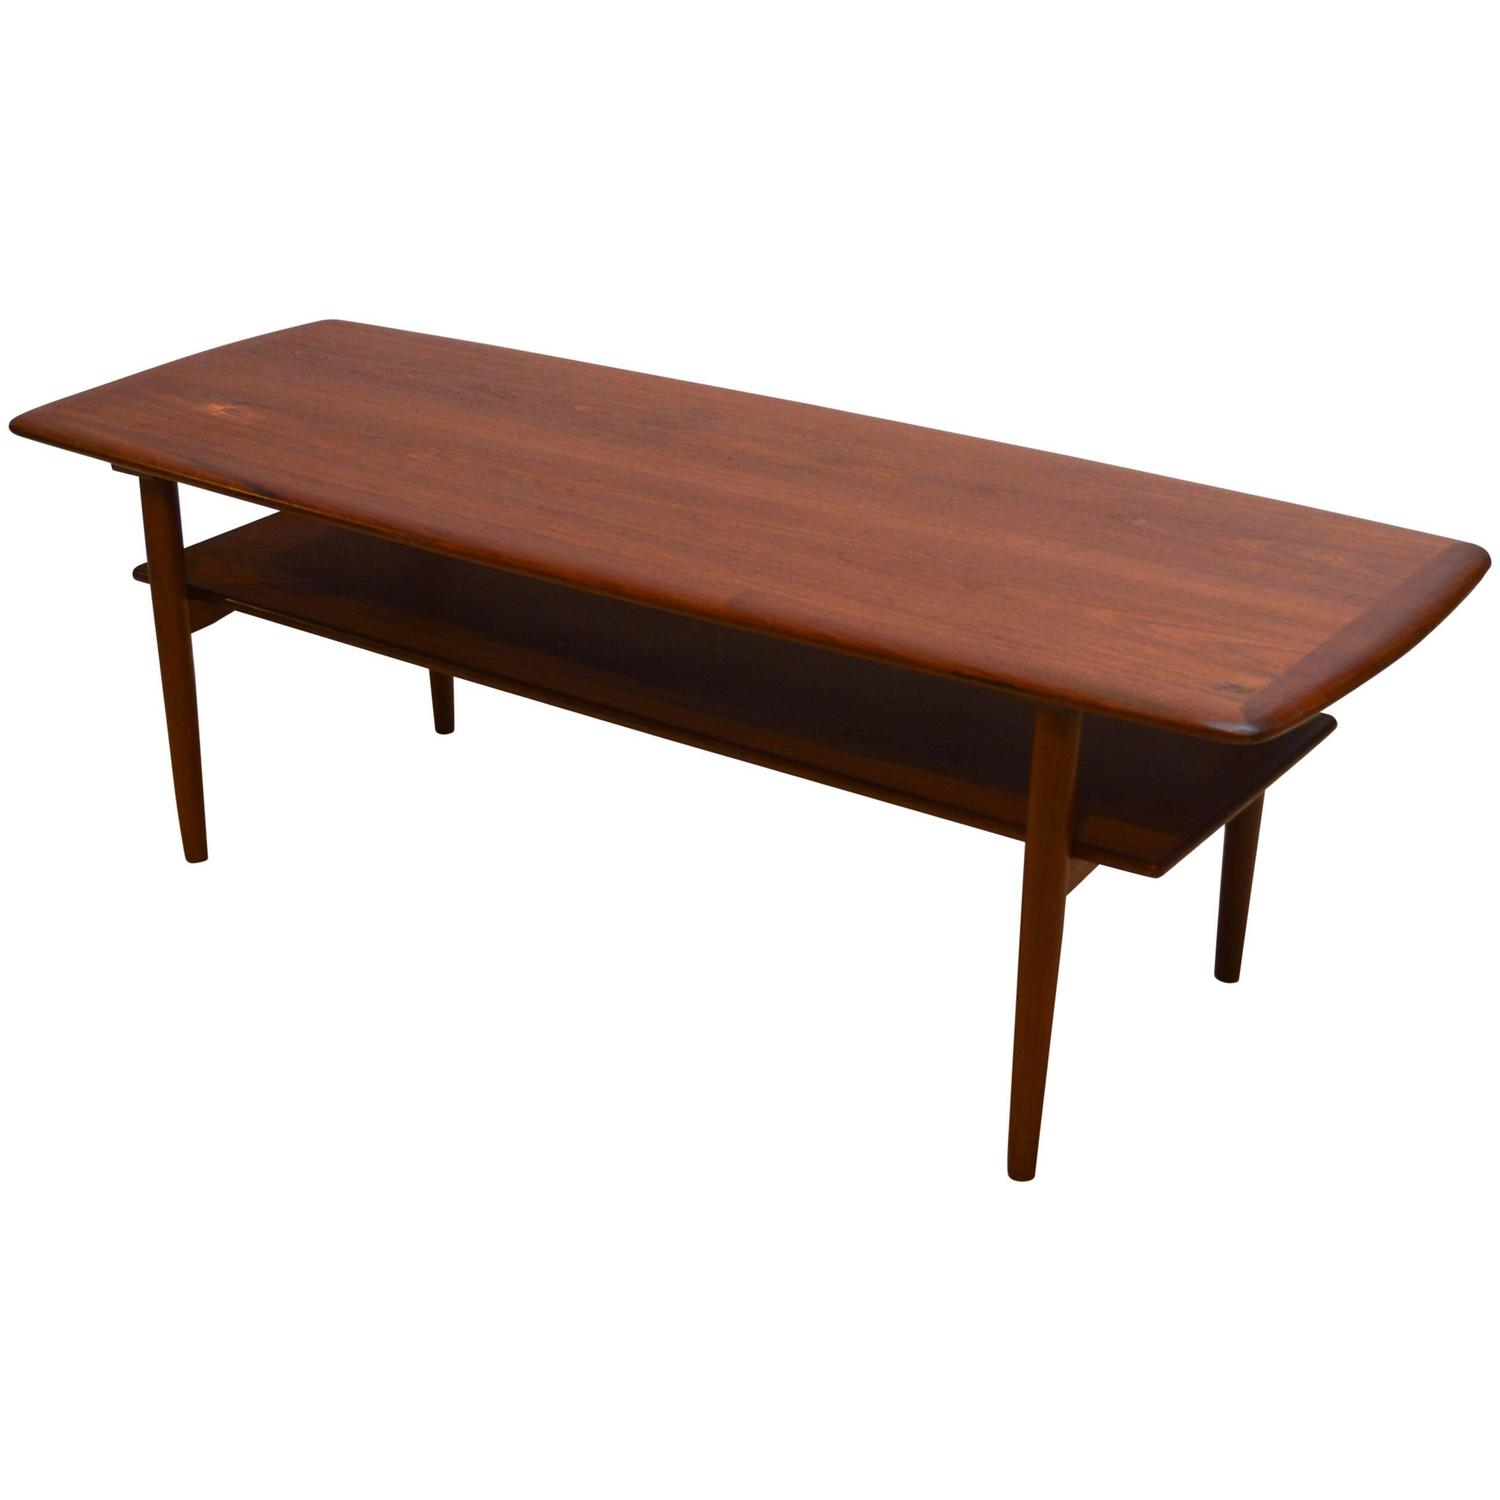 Danish modern teak coffee table with shelf at 1stdibs Coffee table with shelf